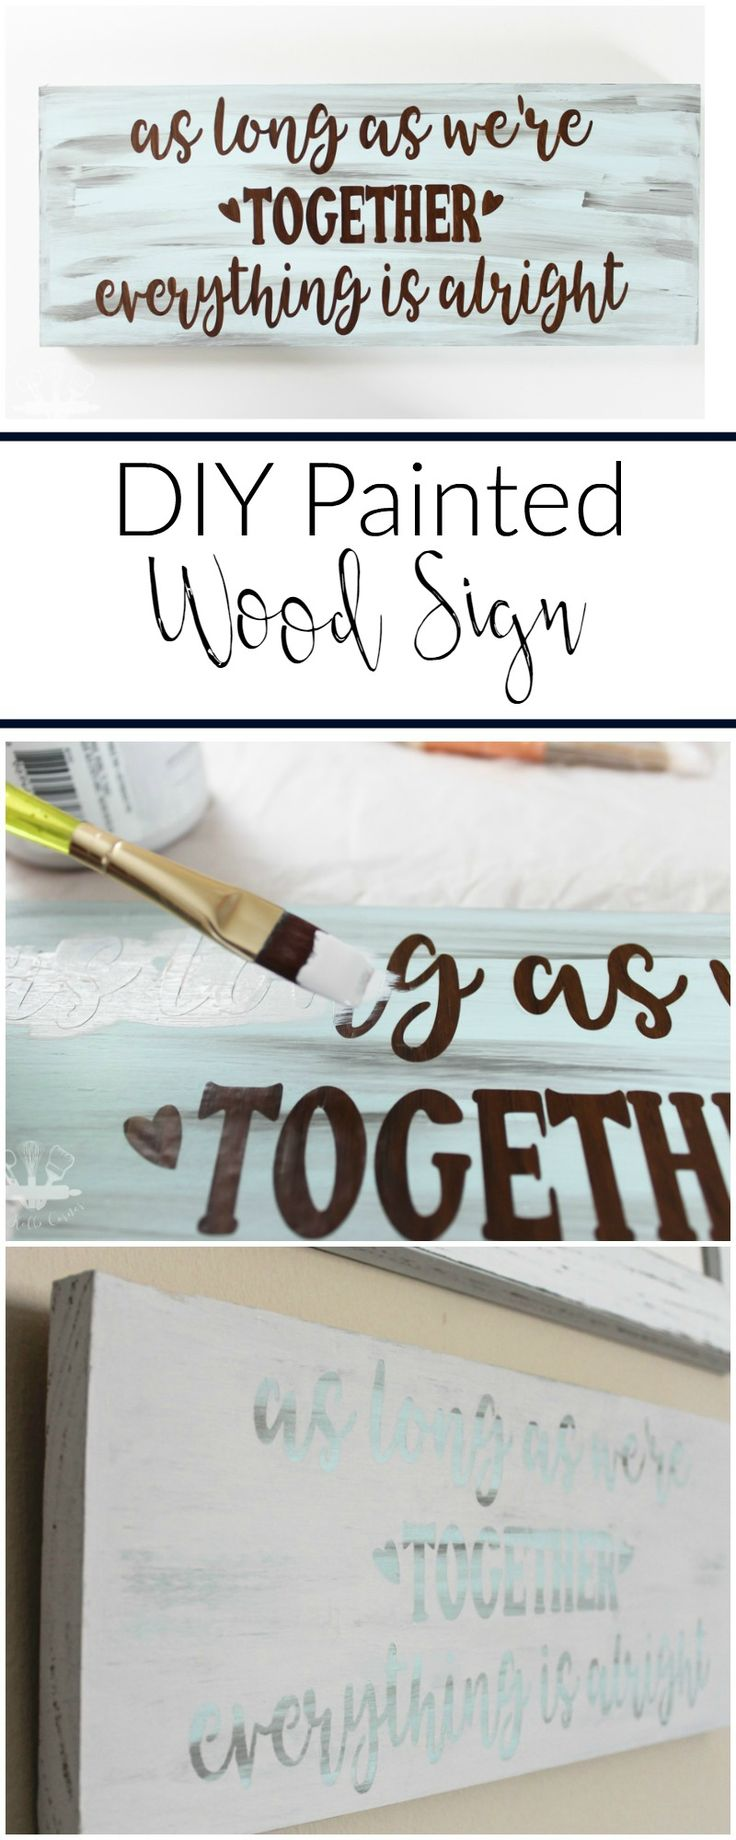 Easy to follow tutorial to make your own DIY painted wood sign